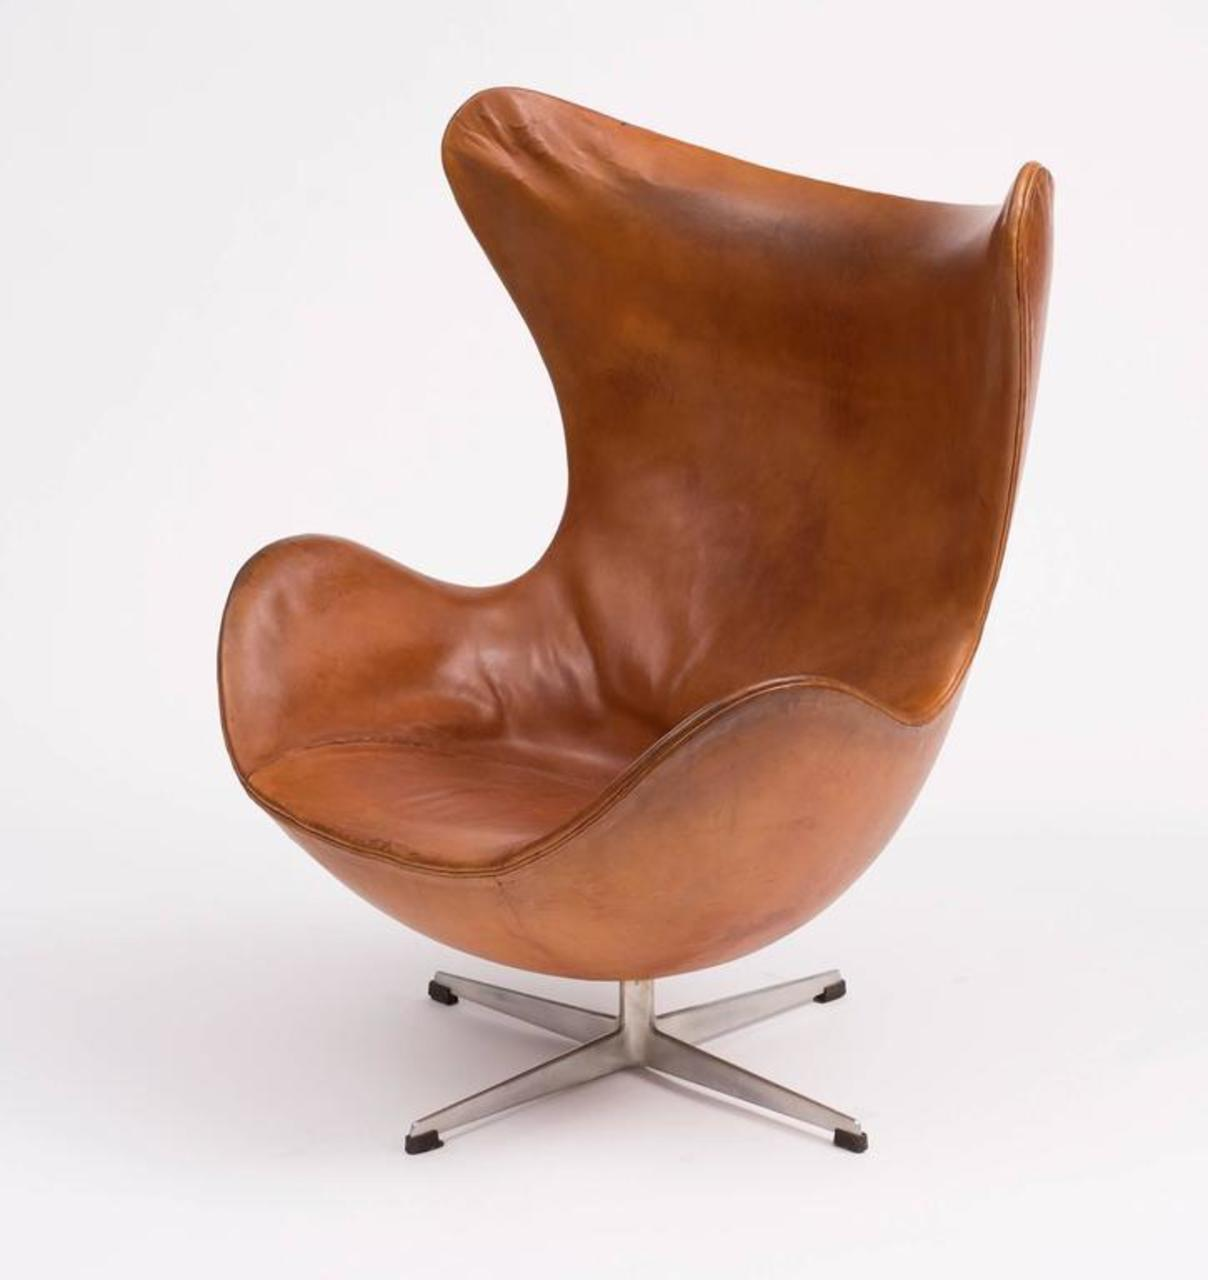 Gentil A First Edition Egg Chair By Arne Jacobsen In Original Cognac Leather With  Lovely Patina.